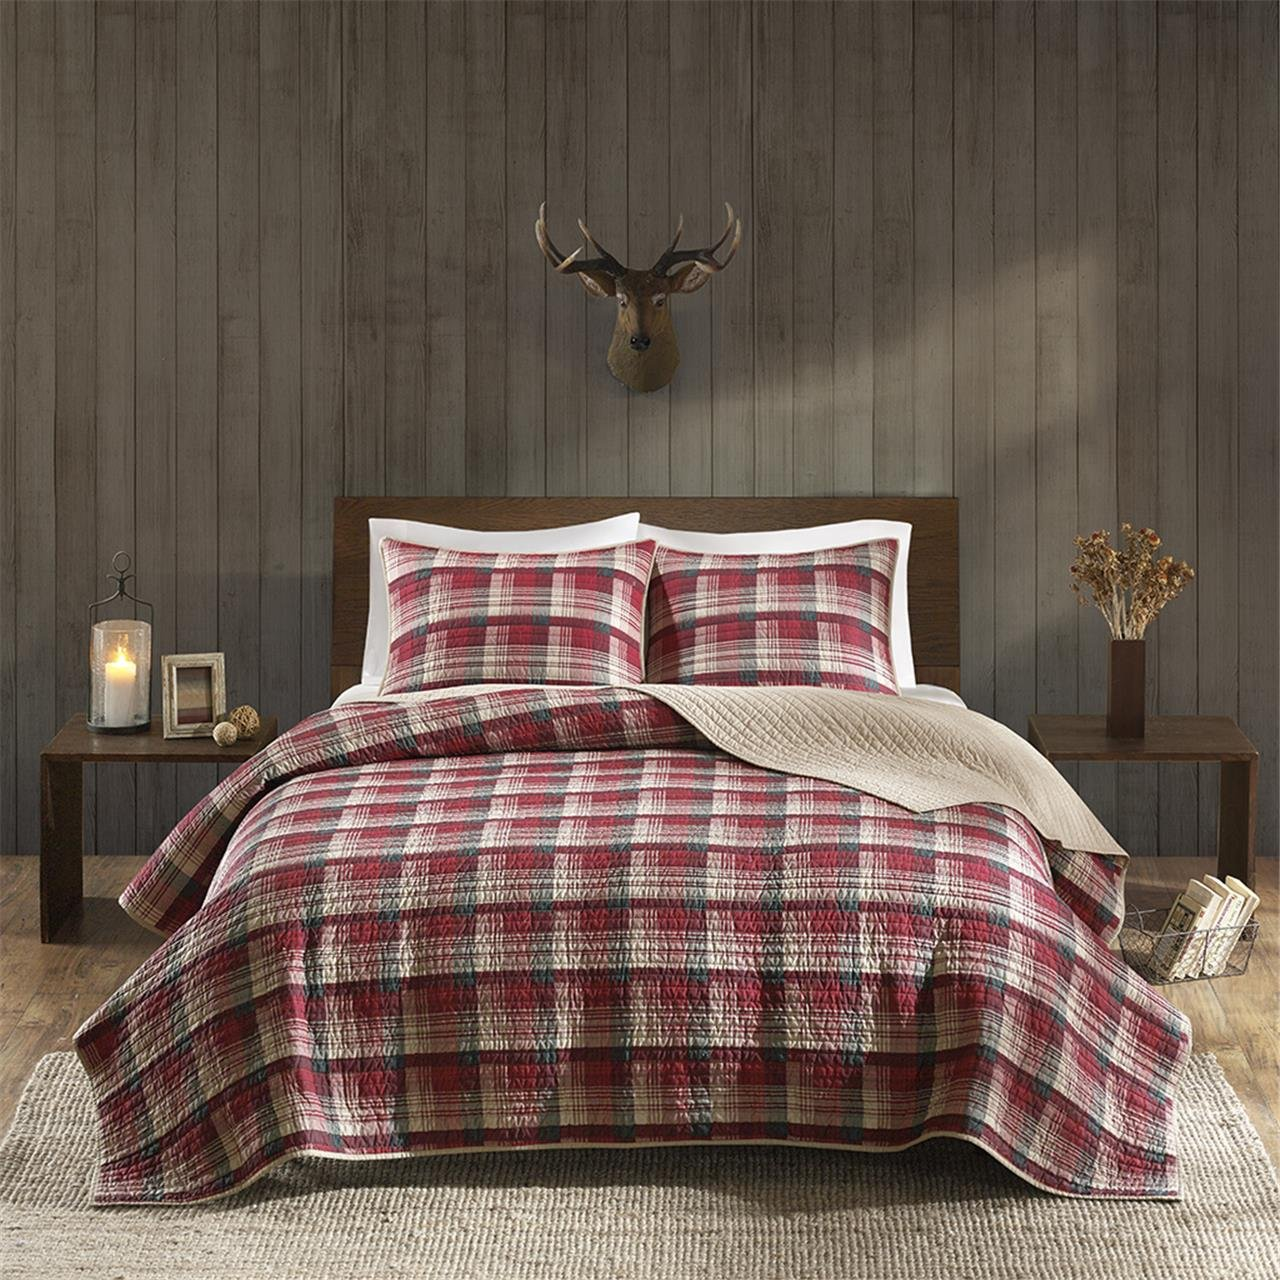 Amazon.com: Woolrich WR14-1785 Tasha Quilt Mini Set Full/Queen Red ... : woolrich quilted blanket - Adamdwight.com